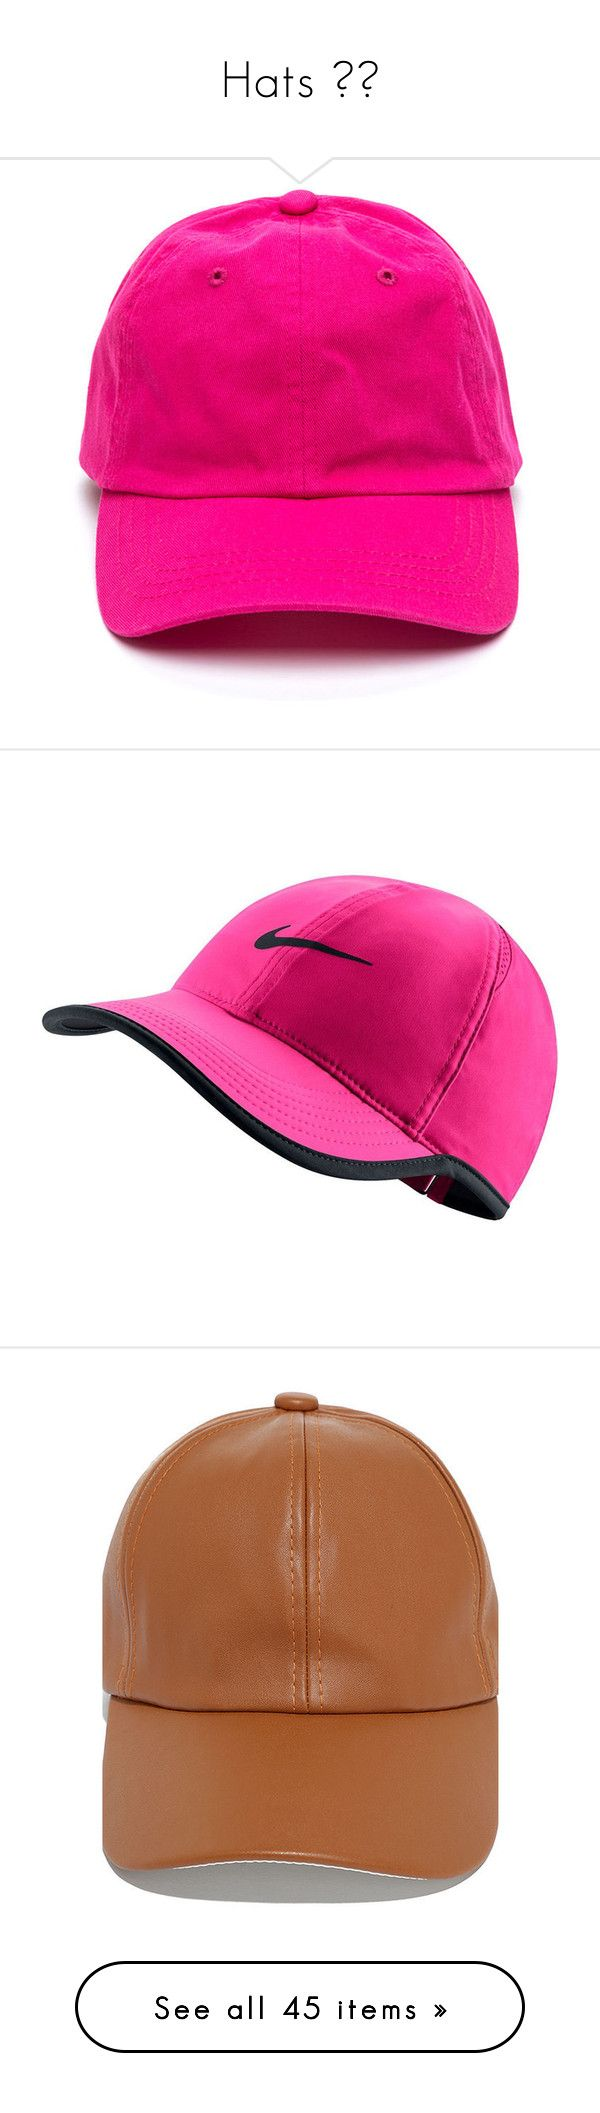 """Hats ✨💯"" by saucinonyou999 ❤ liked on Polyvore featuring accessories, hats, pink, cap hats, ball cap, pink hat, snapback hats, adjustable hats, light red and embroidered baseball caps"